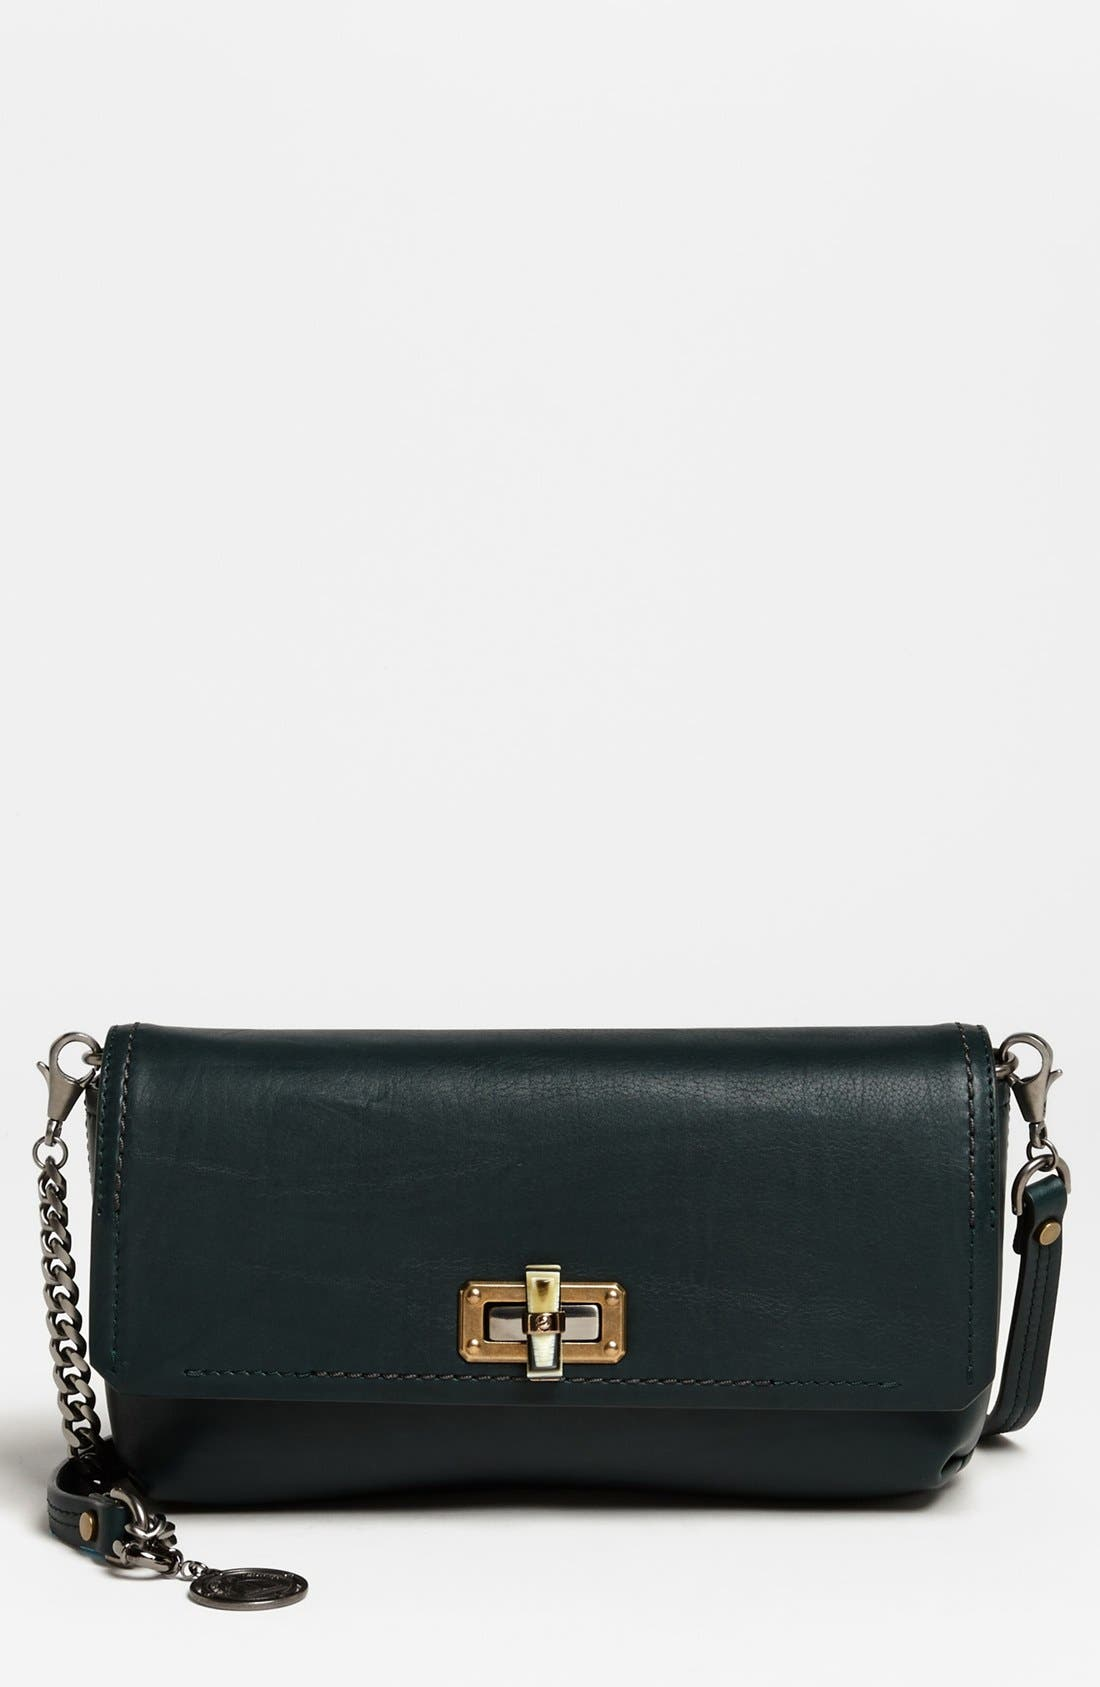 Alternate Image 1 Selected - Lanvin 'Happy' Leather Crossbody Bag